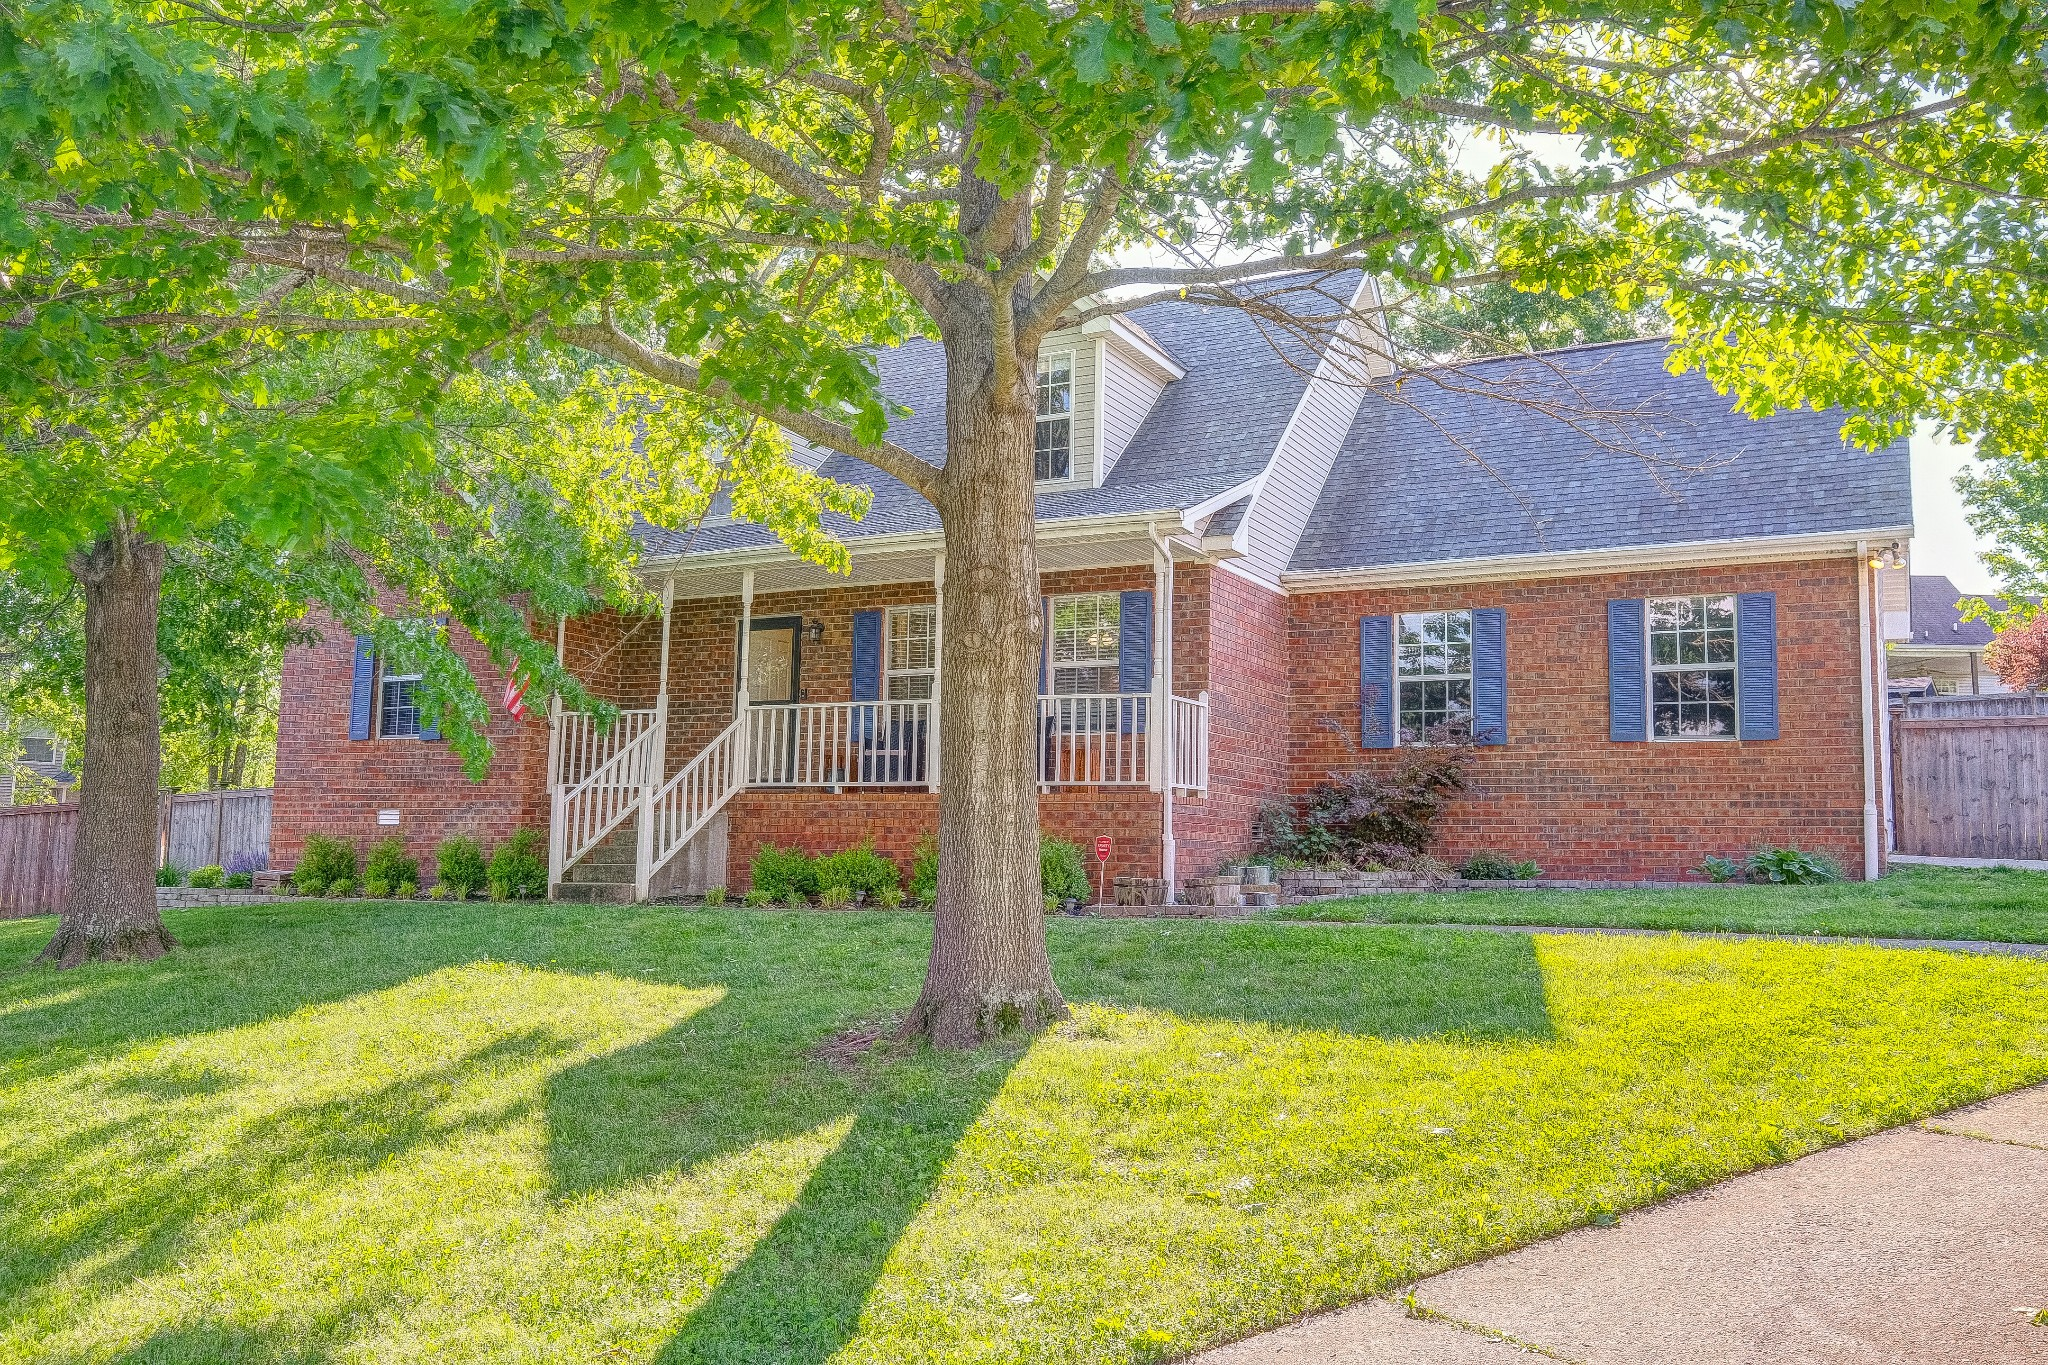 107 Timberview Cir Property Photo - LA VERGNE, TN real estate listing